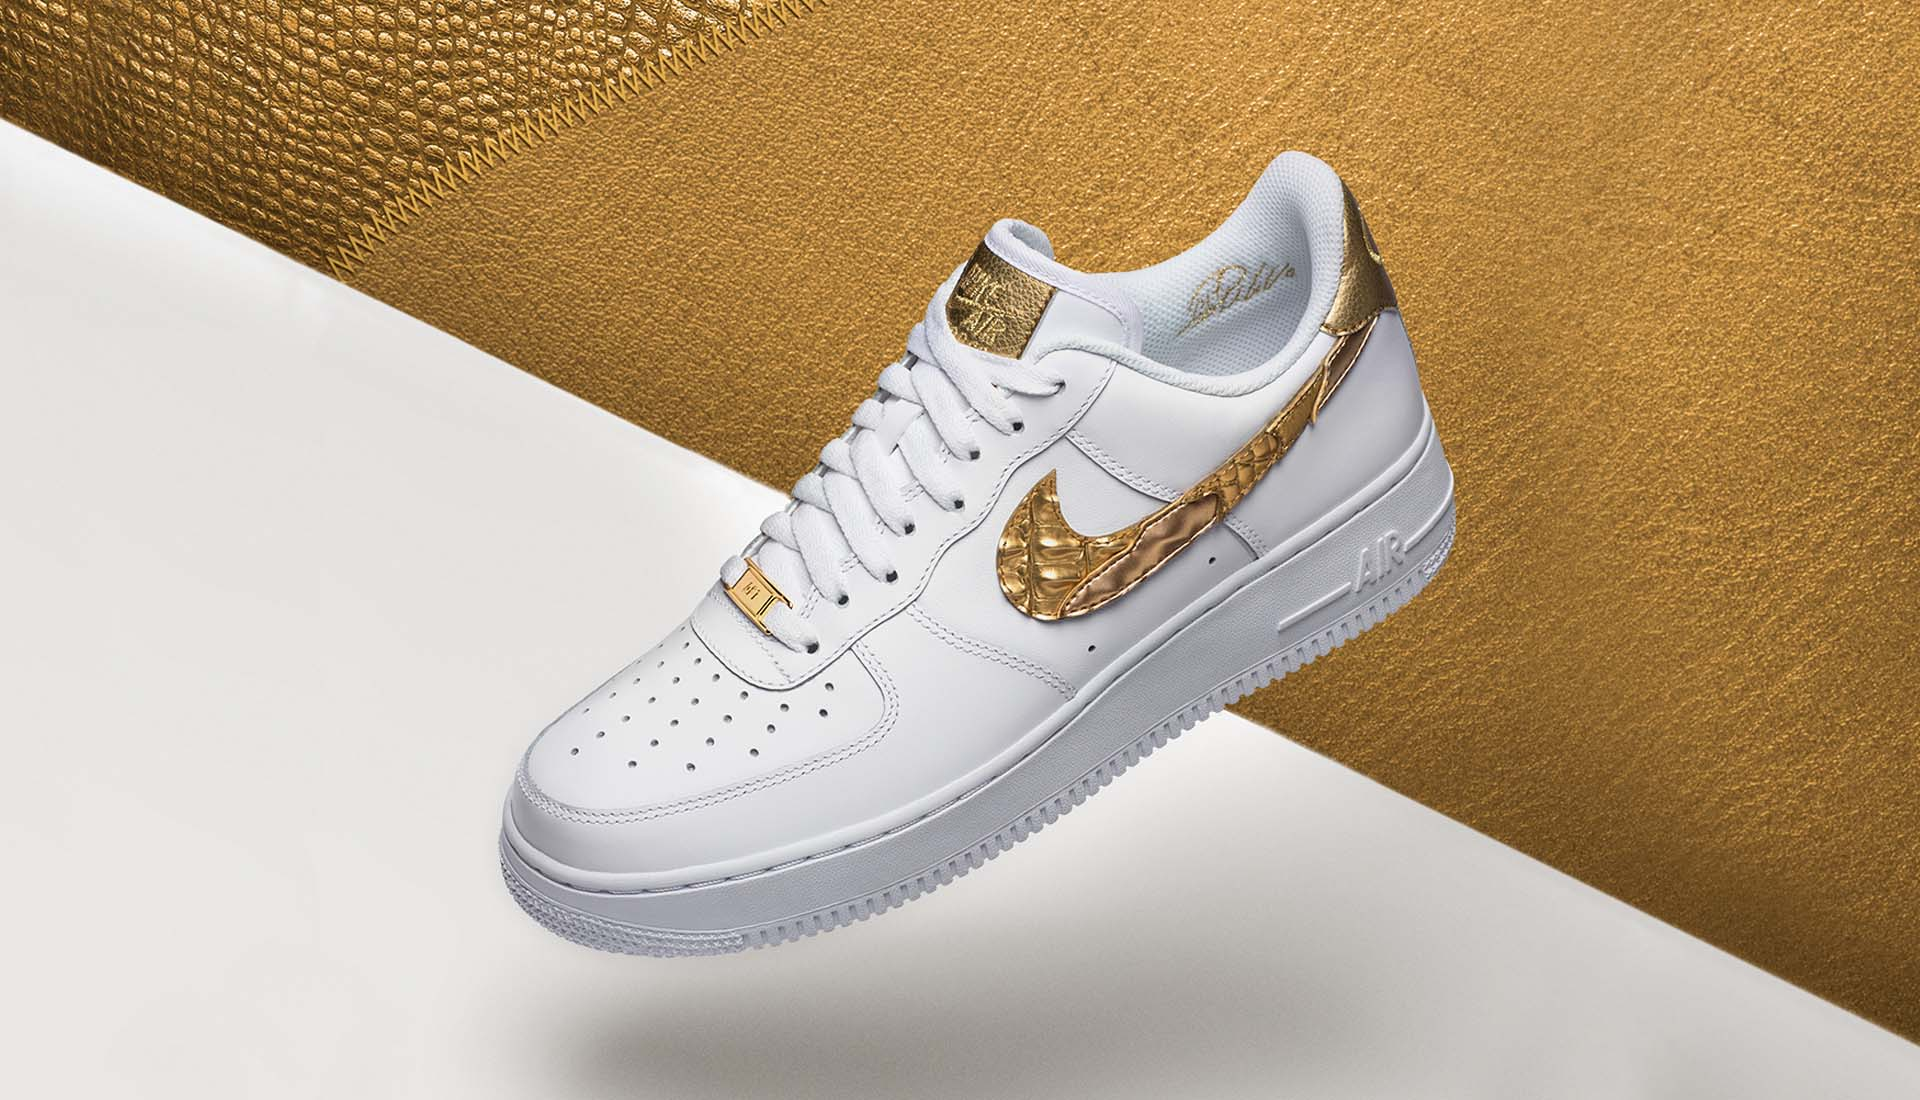 Acquista nike air force one limited edition OFF79% sconti